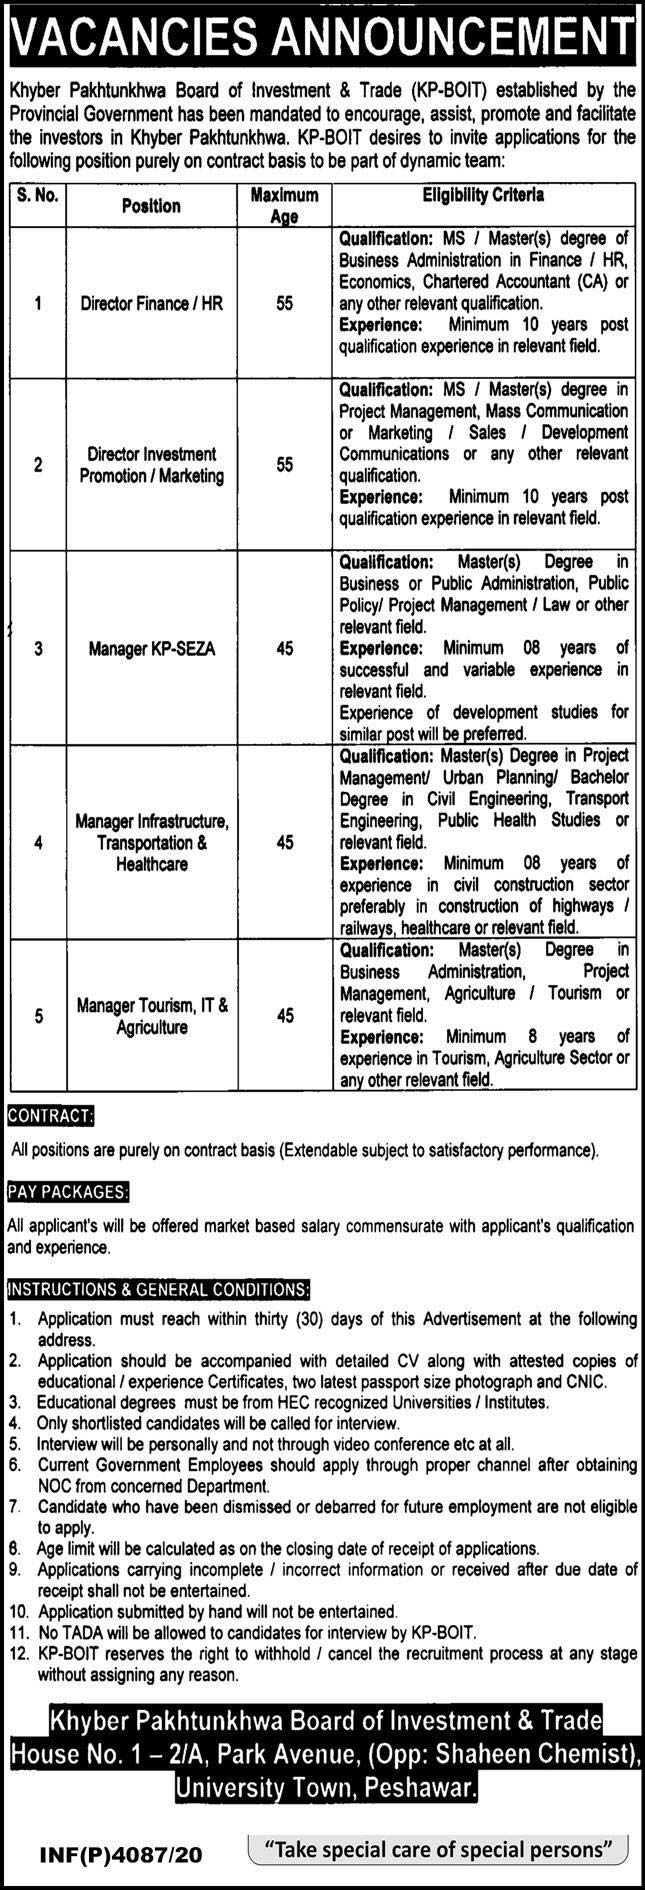 KPK Board of Investment & Trade Jobs 2020